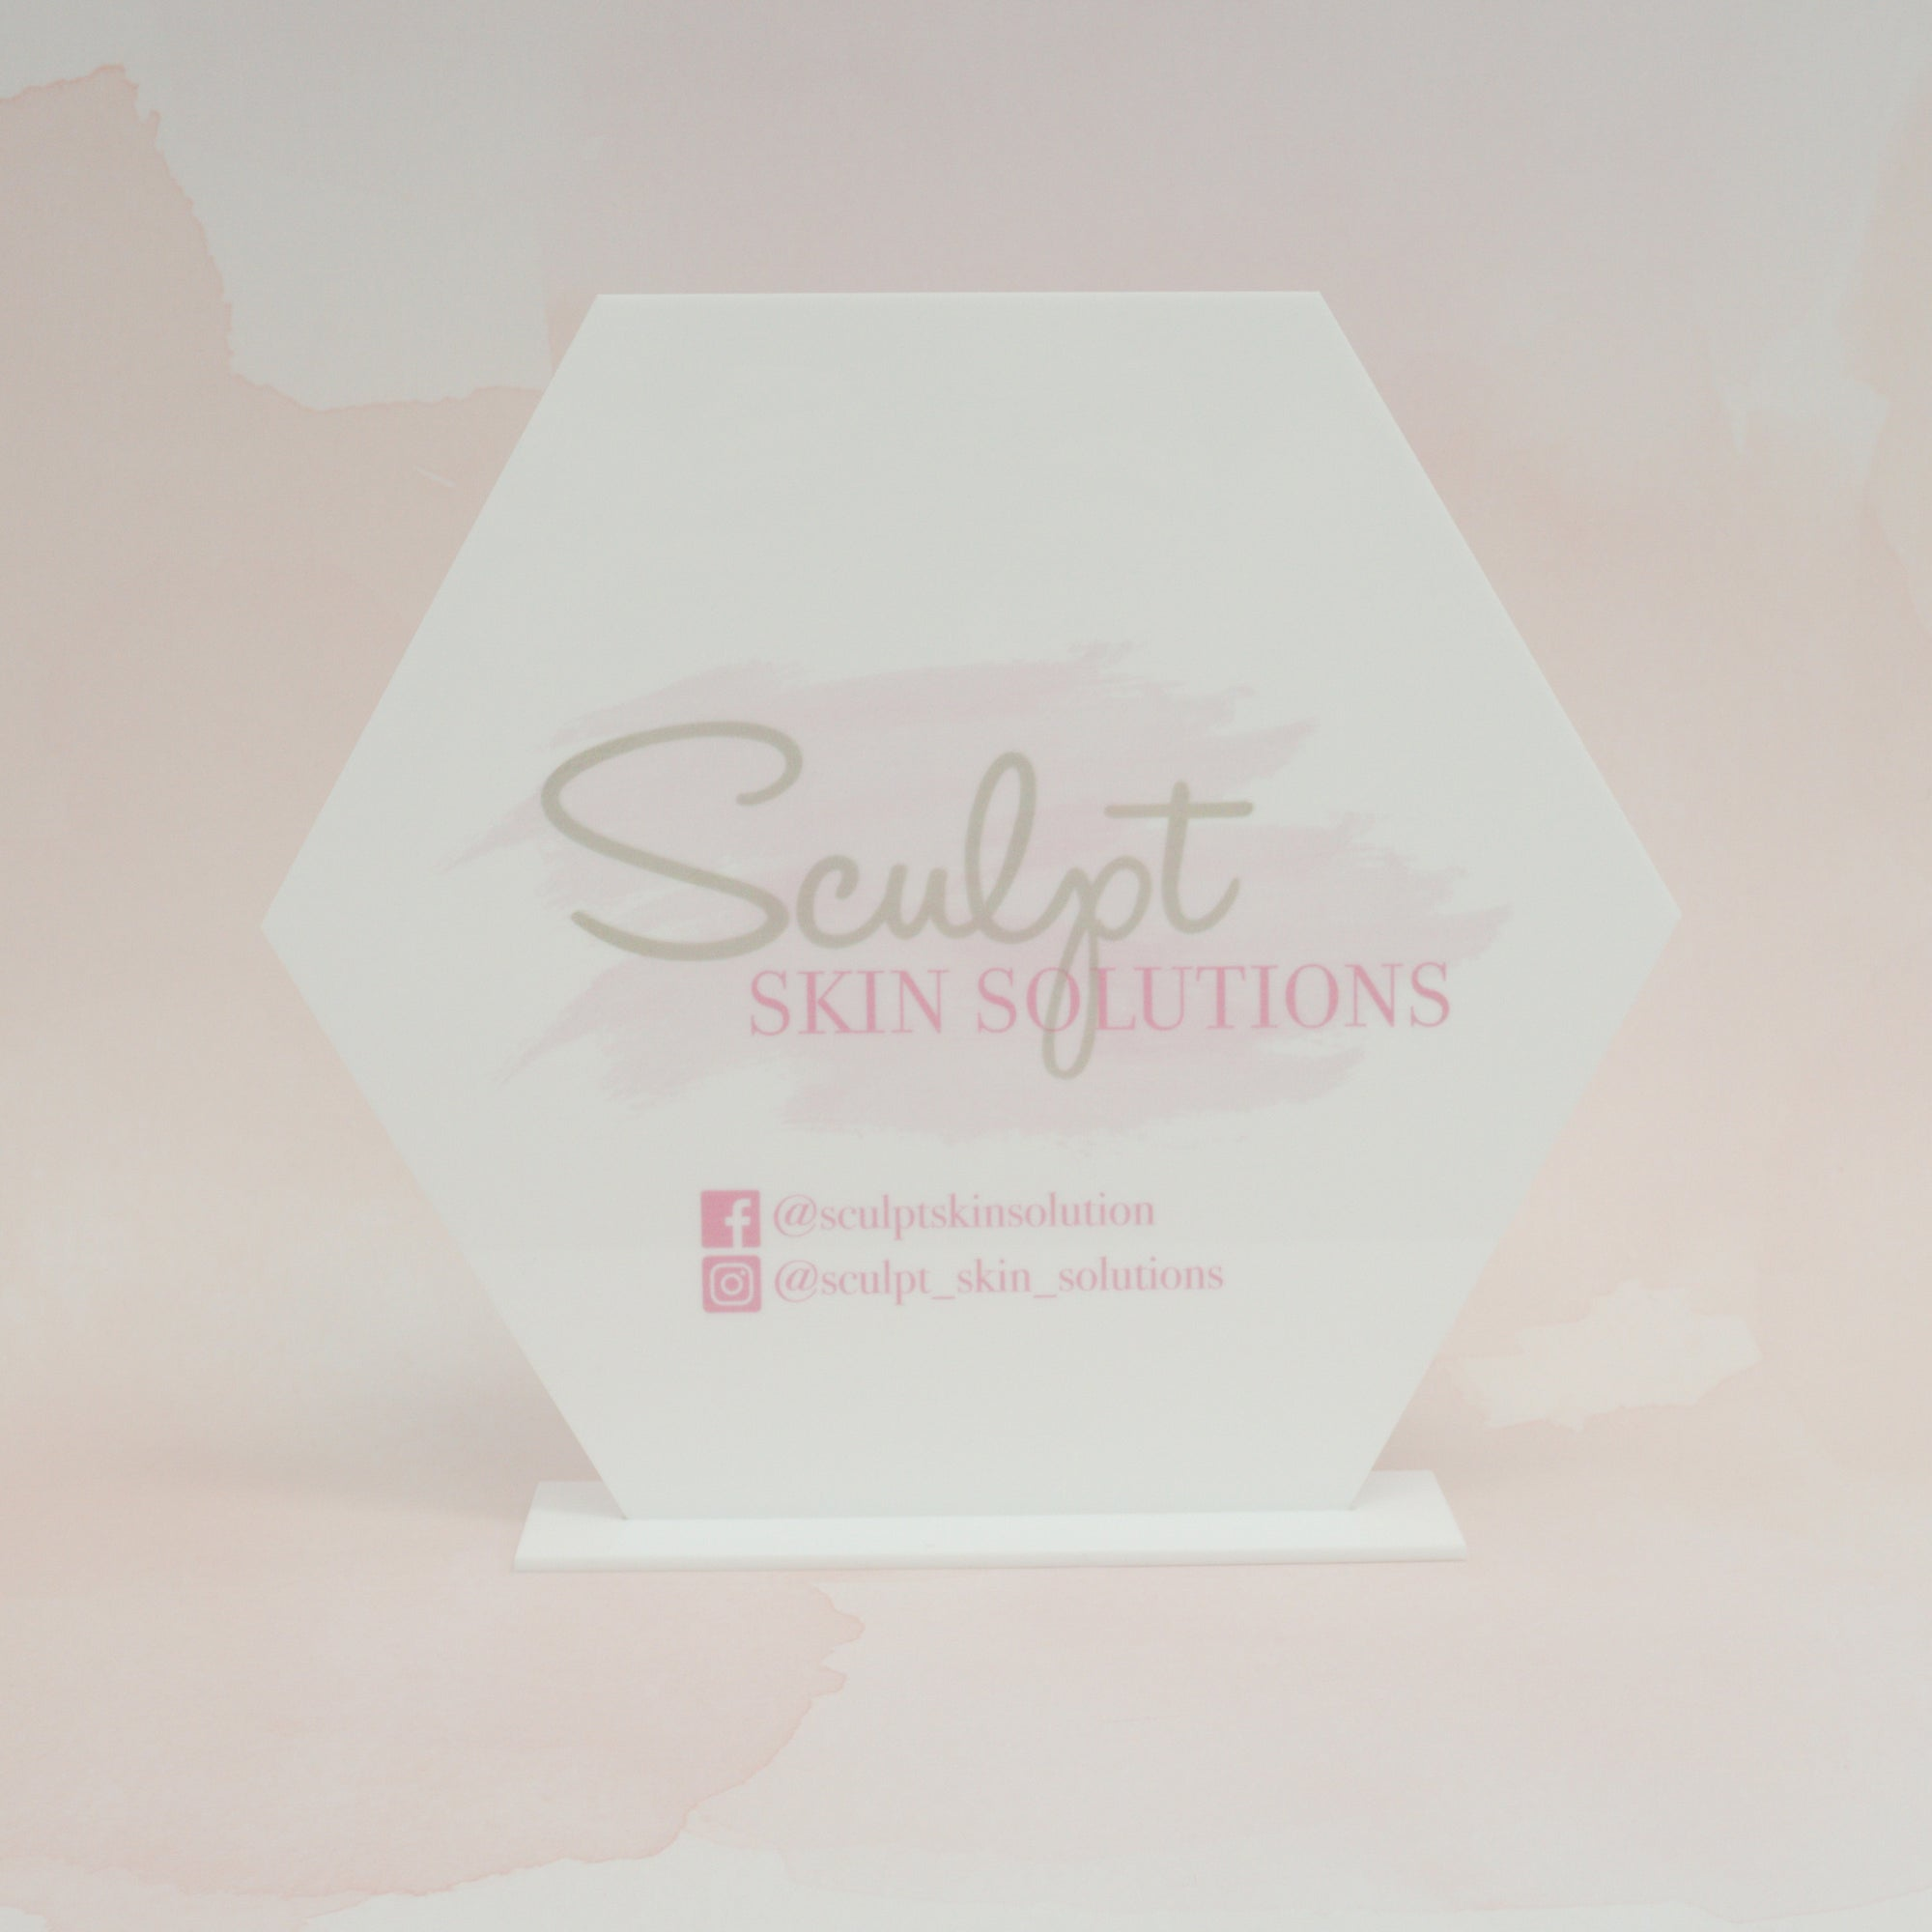 Custom Logo Acrylic Sign for Boutiques & Small Businesses